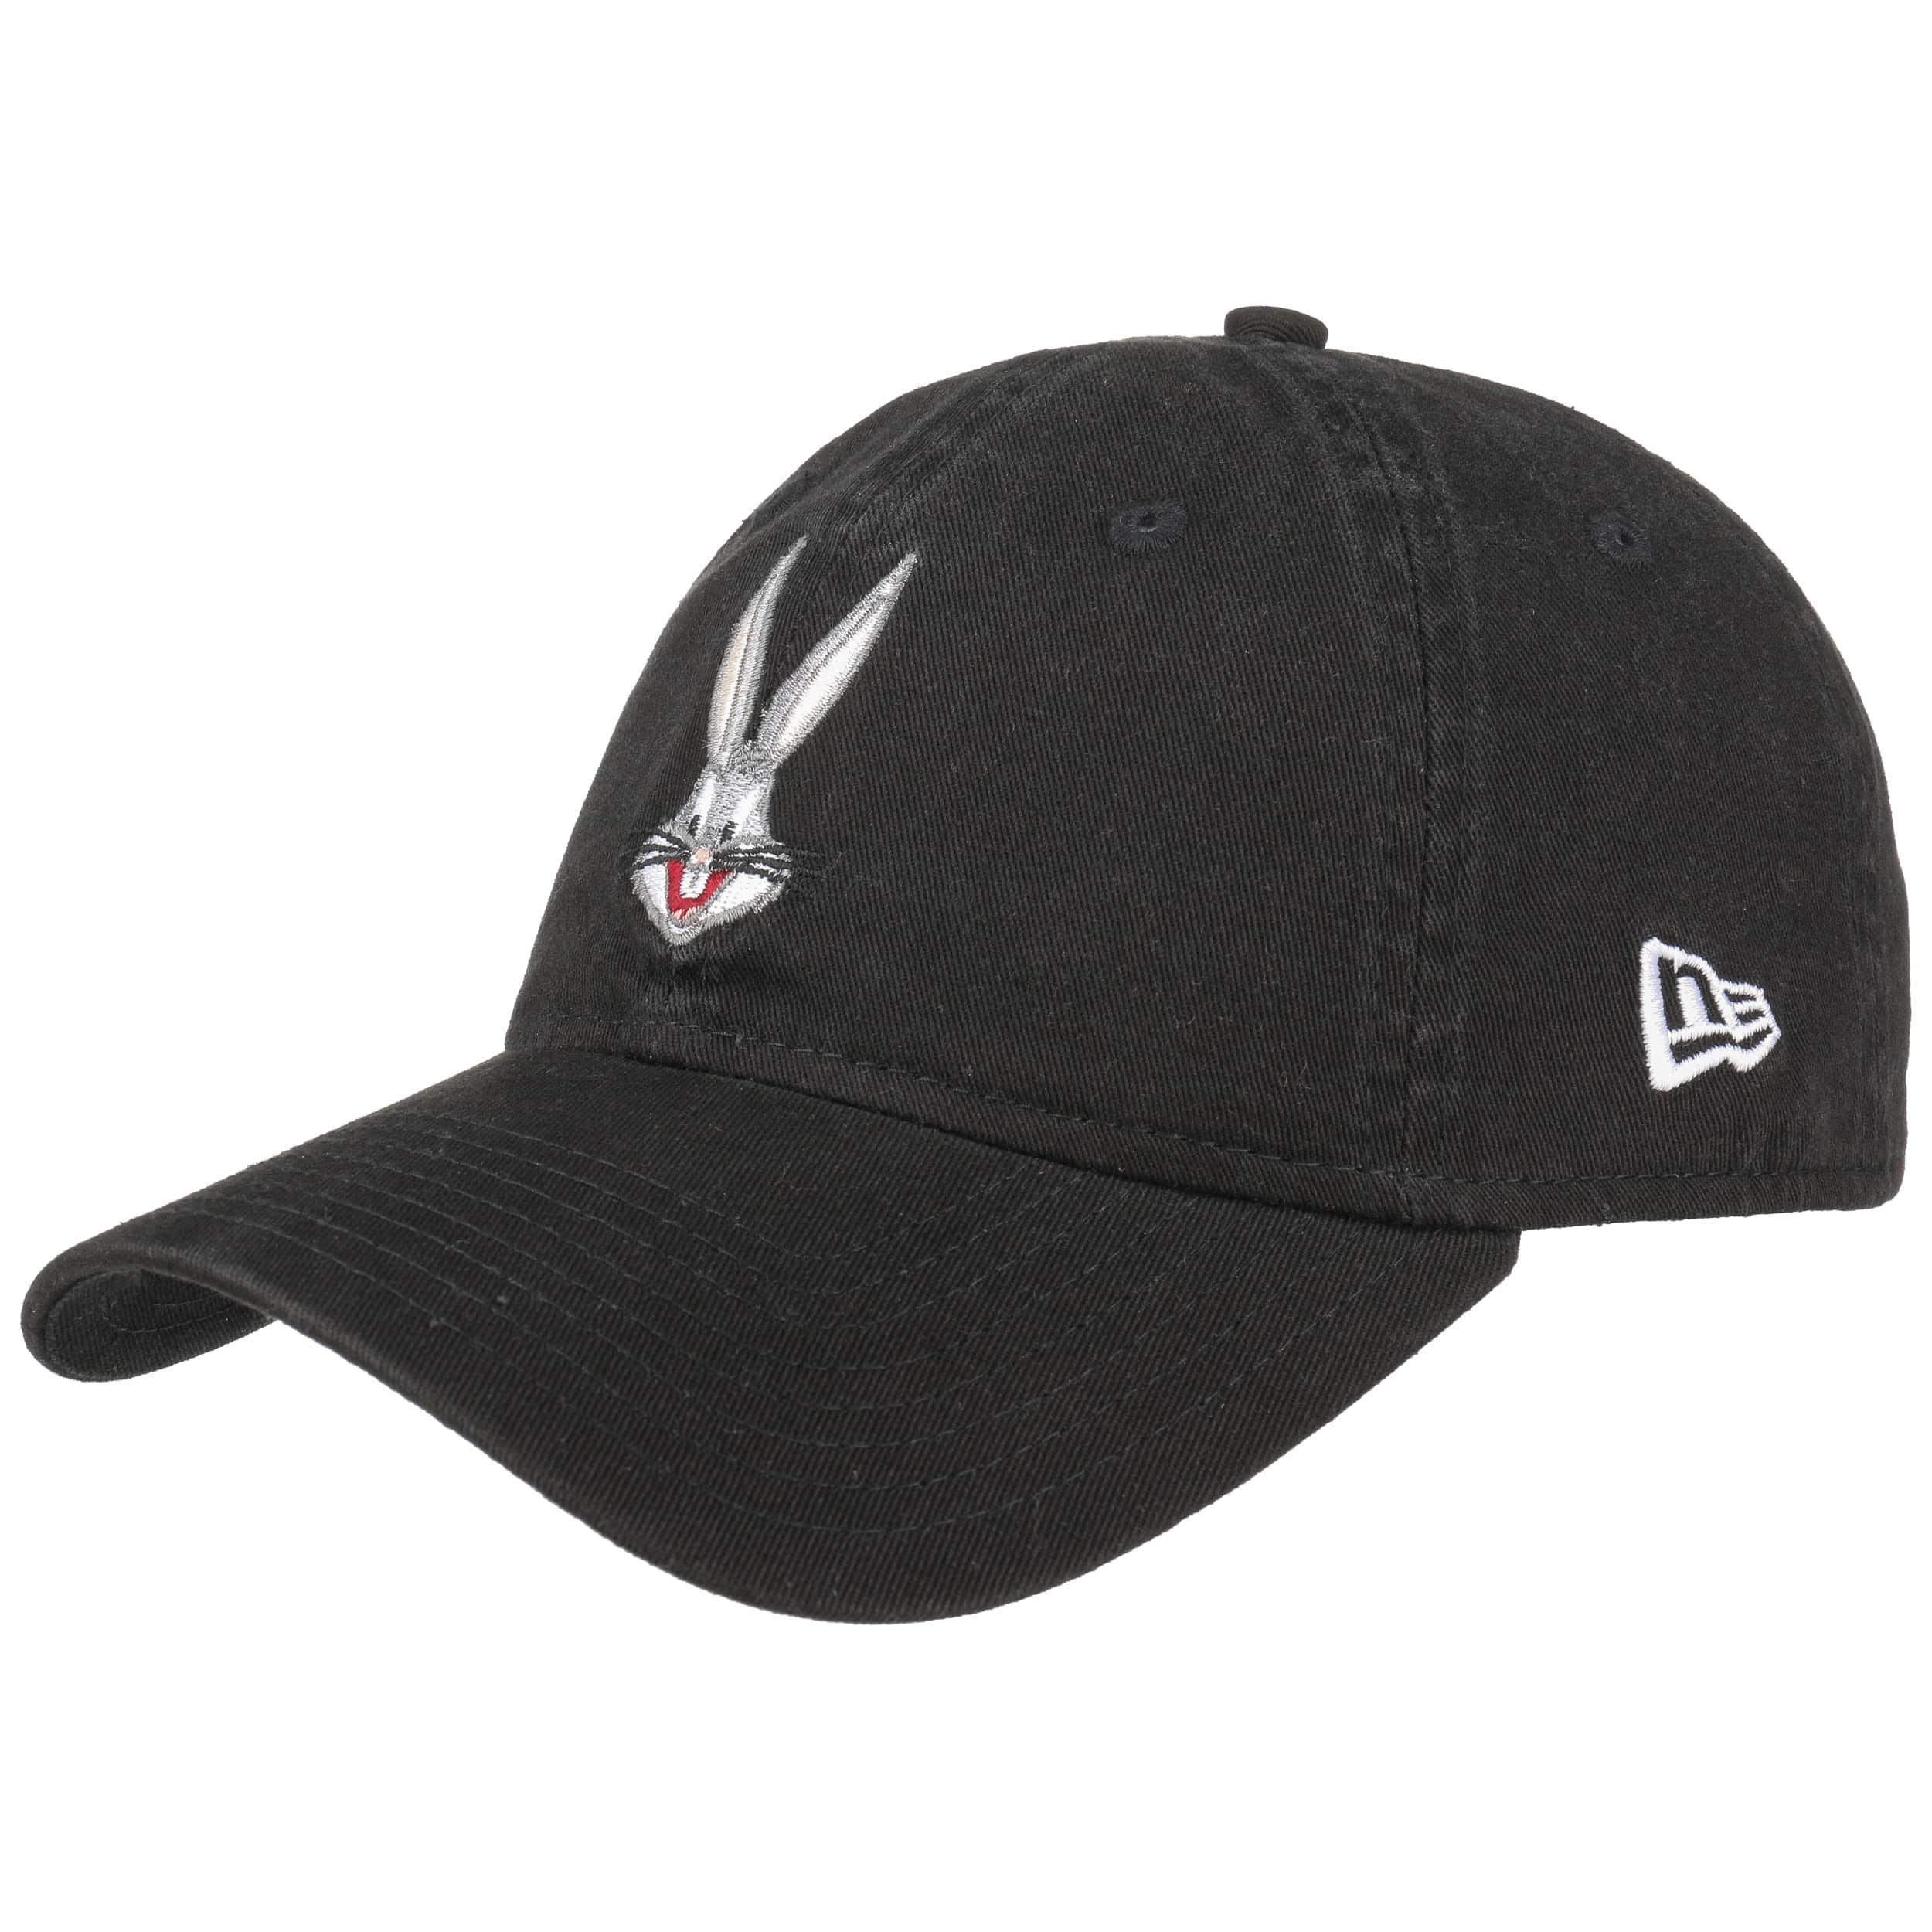 ... 9Forty Looney Tunes Bugs Bunny Cap by New Era - black 6 93b2e062908